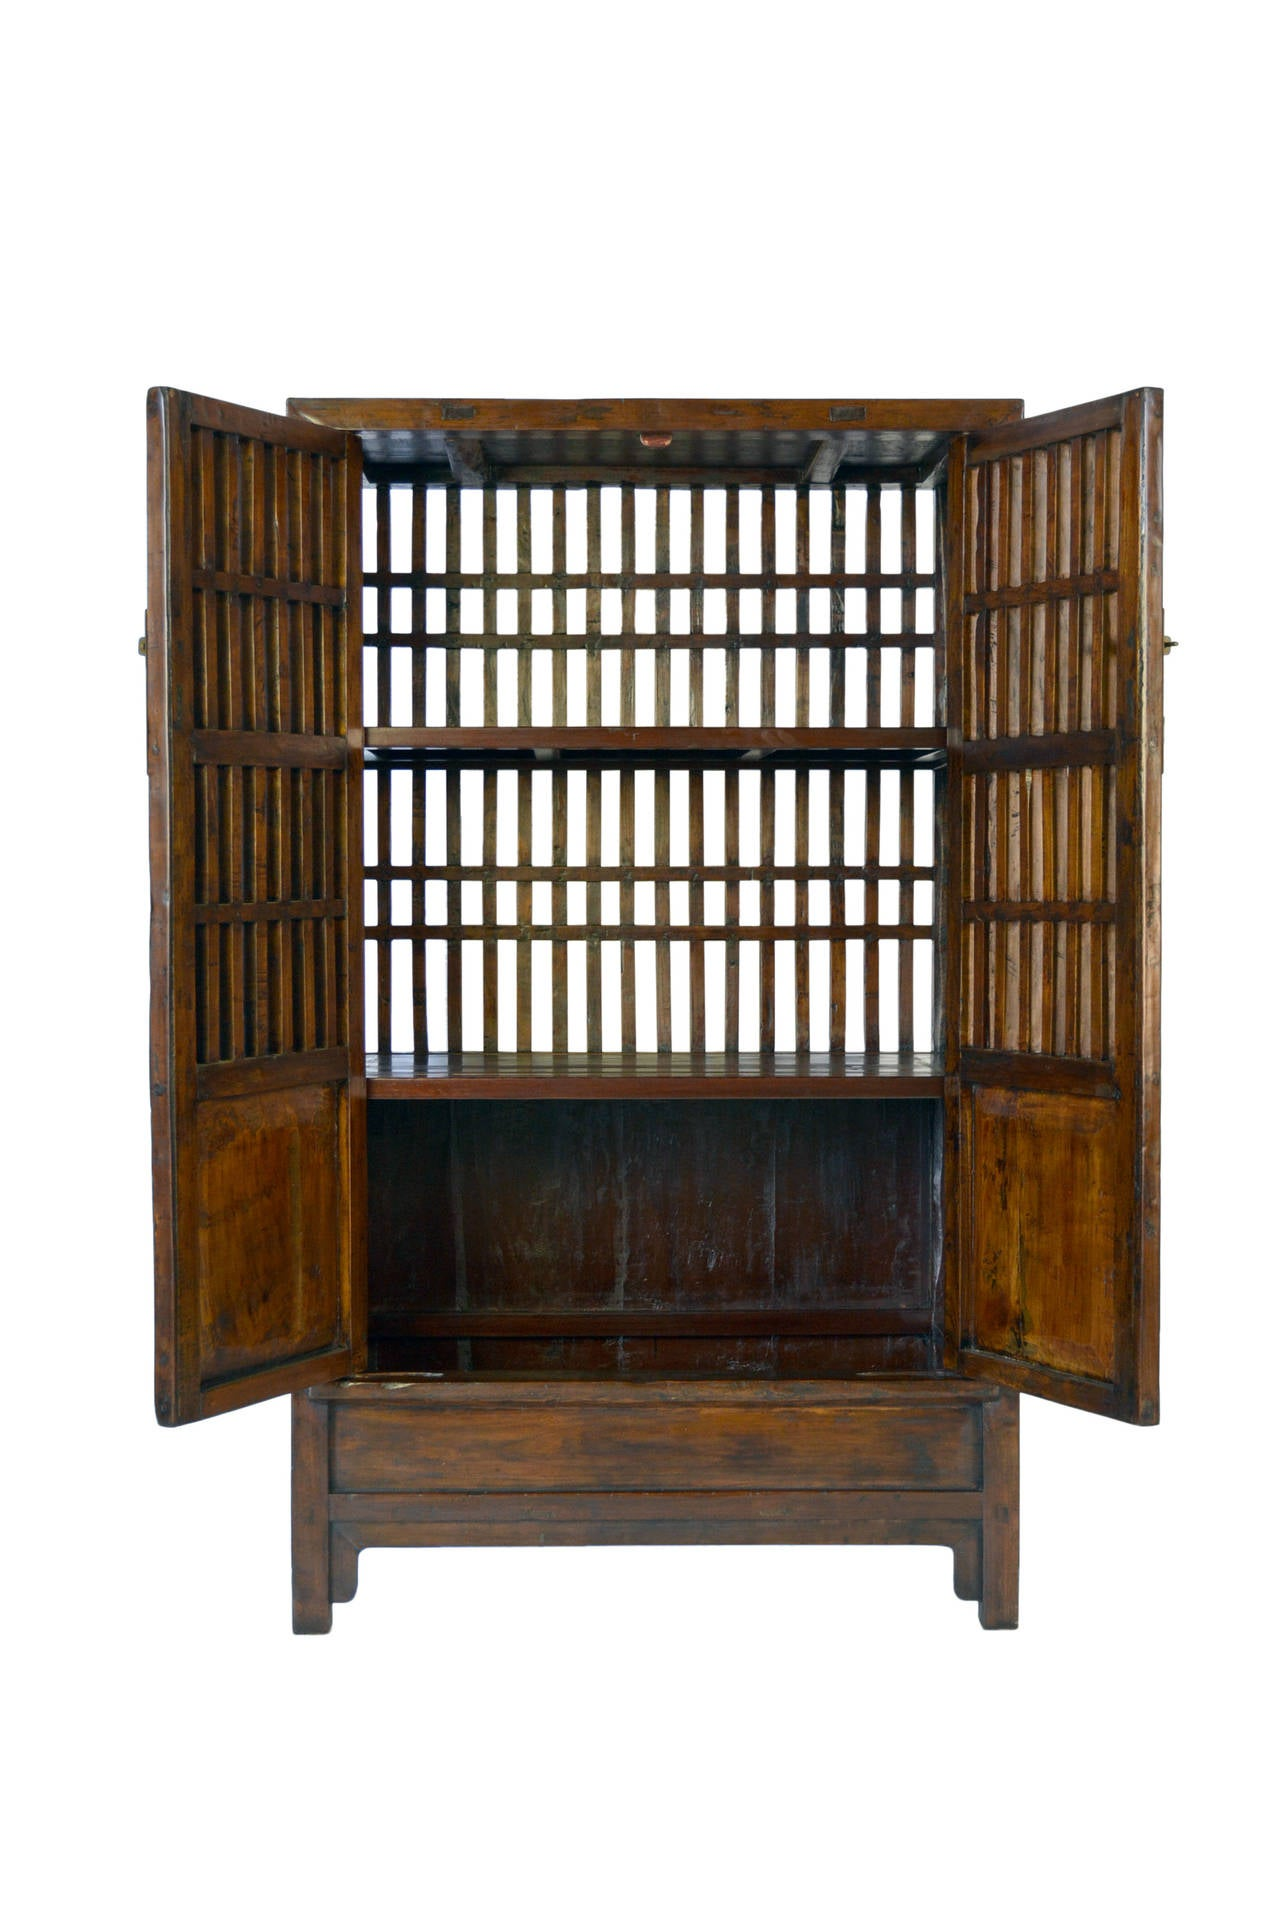 19th century chinese kitchen cabinet for sale at 1stdibs